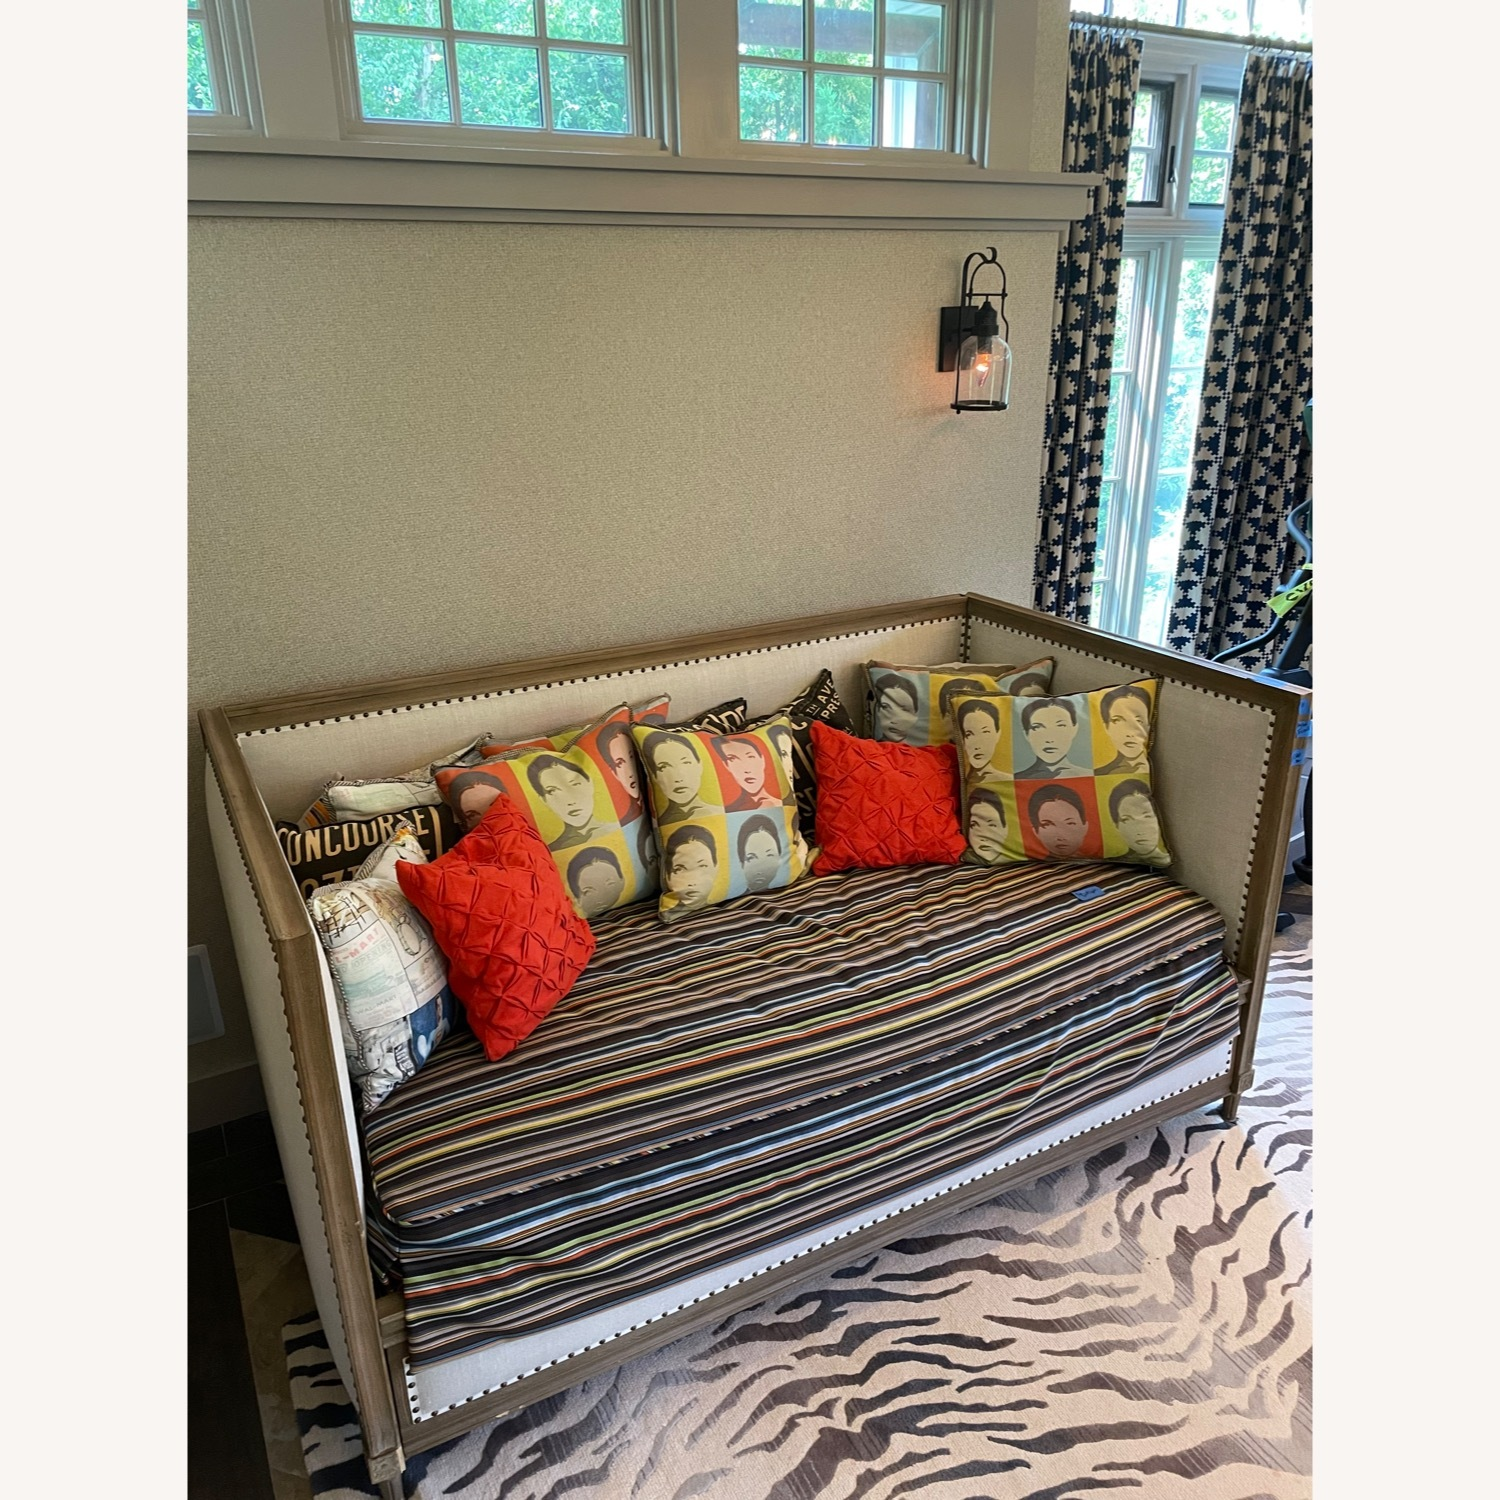 Restoration Hardware Maison Daybed with Paul Smith Cover - image-1